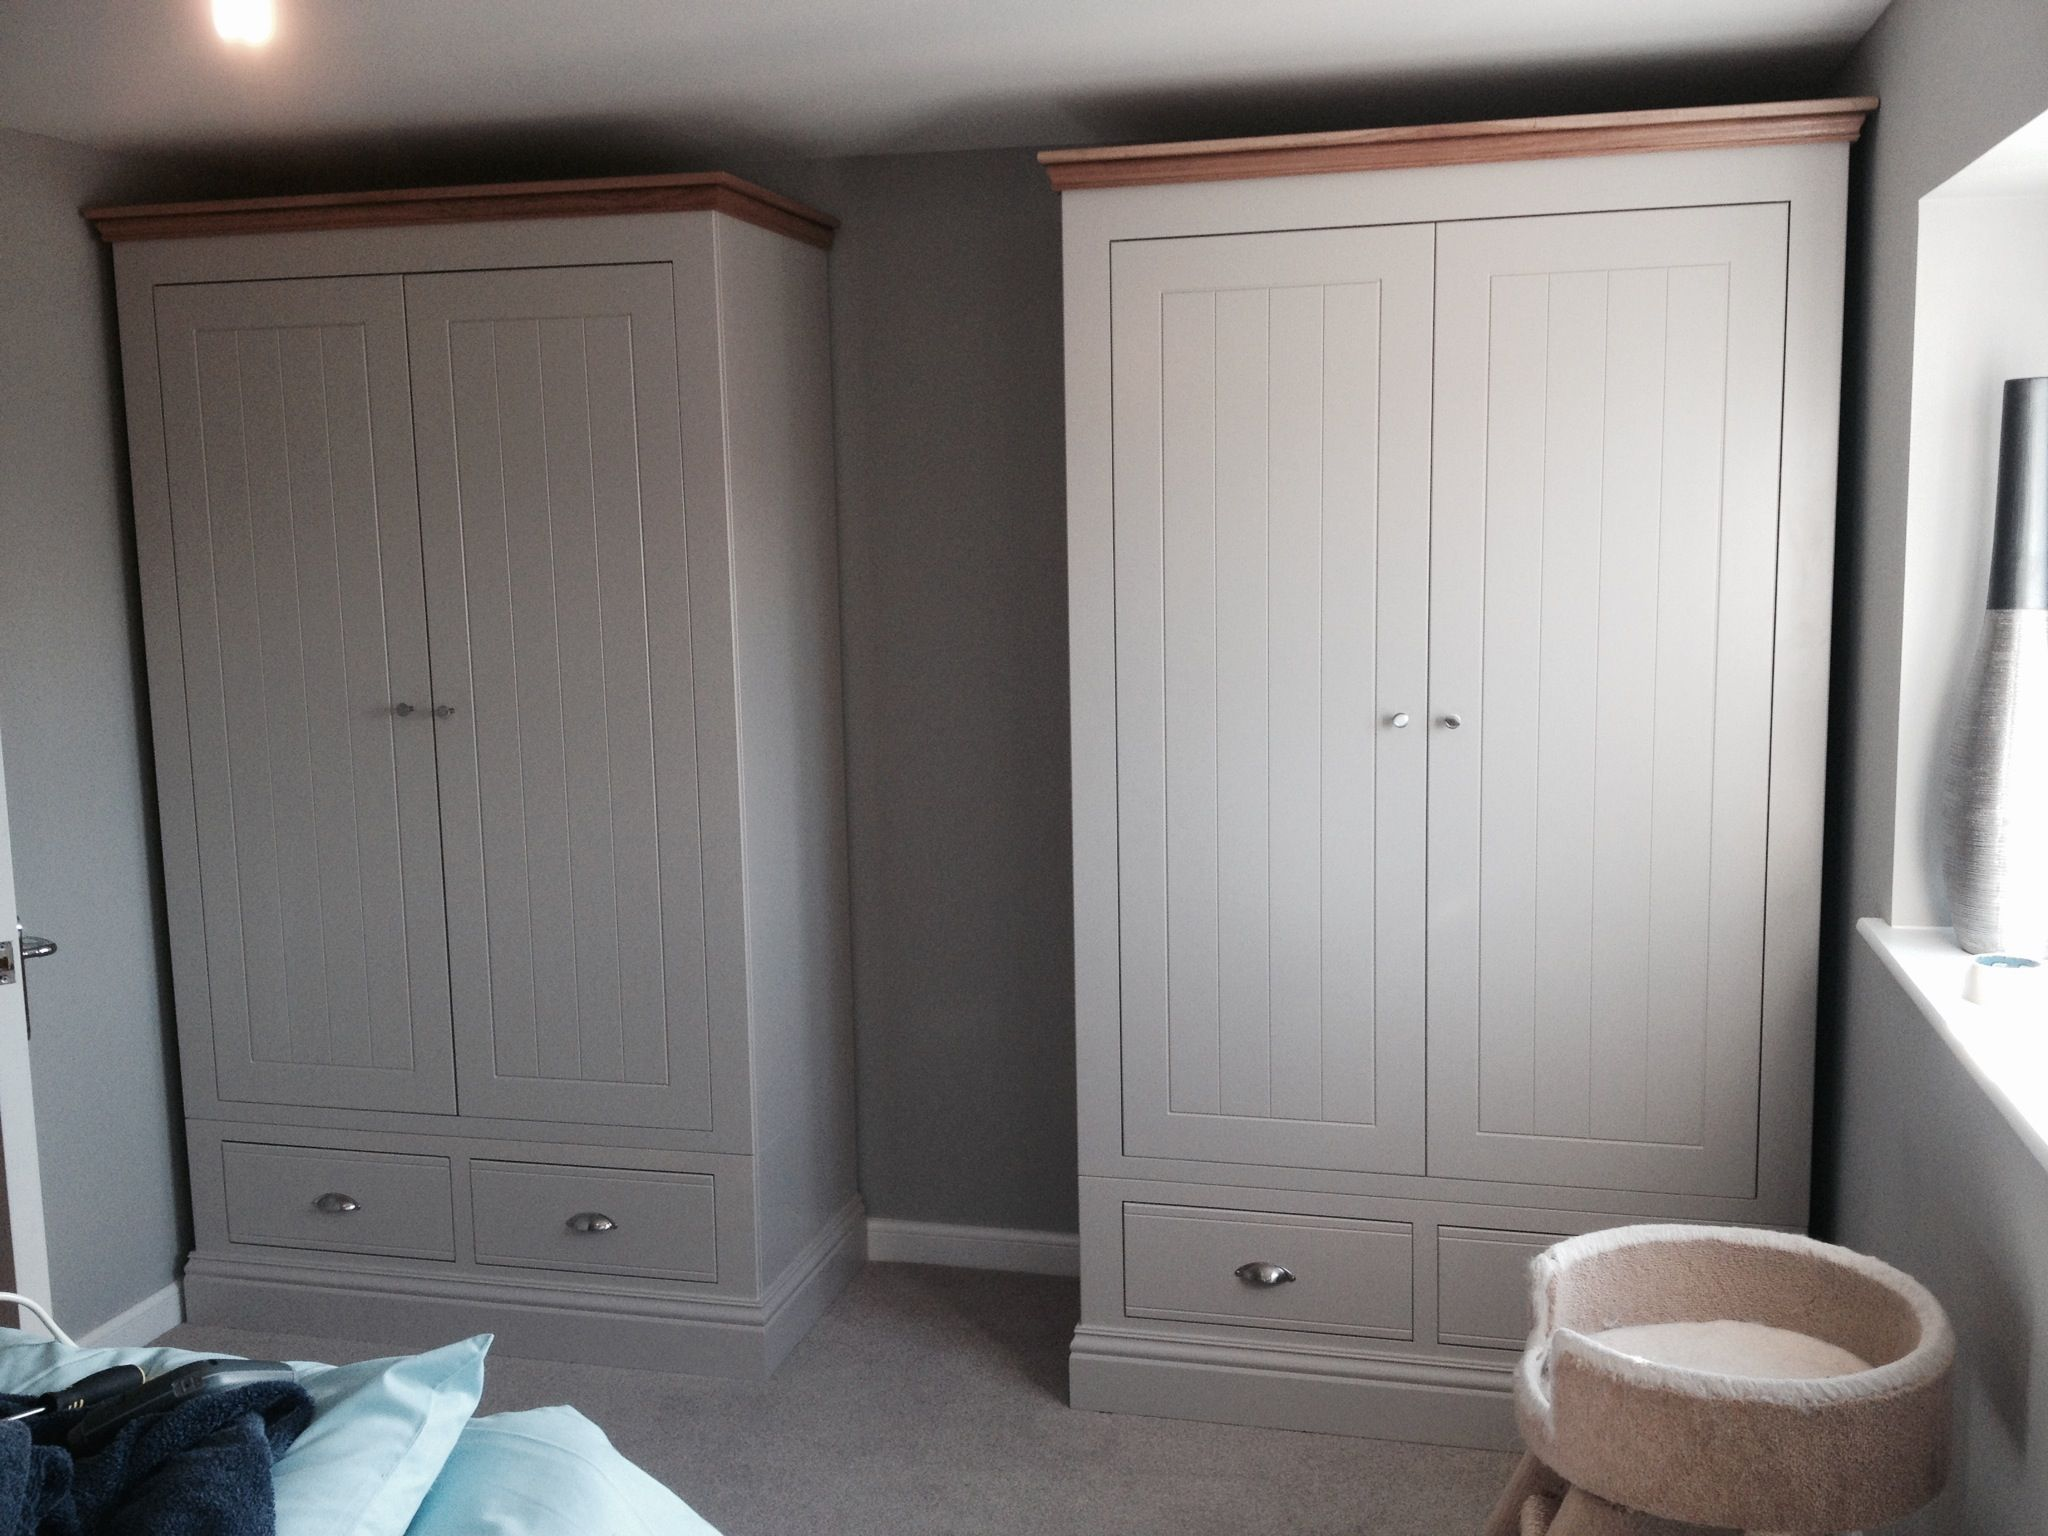 Two Of Our New England Extra Tall Wardrobes Installed Today